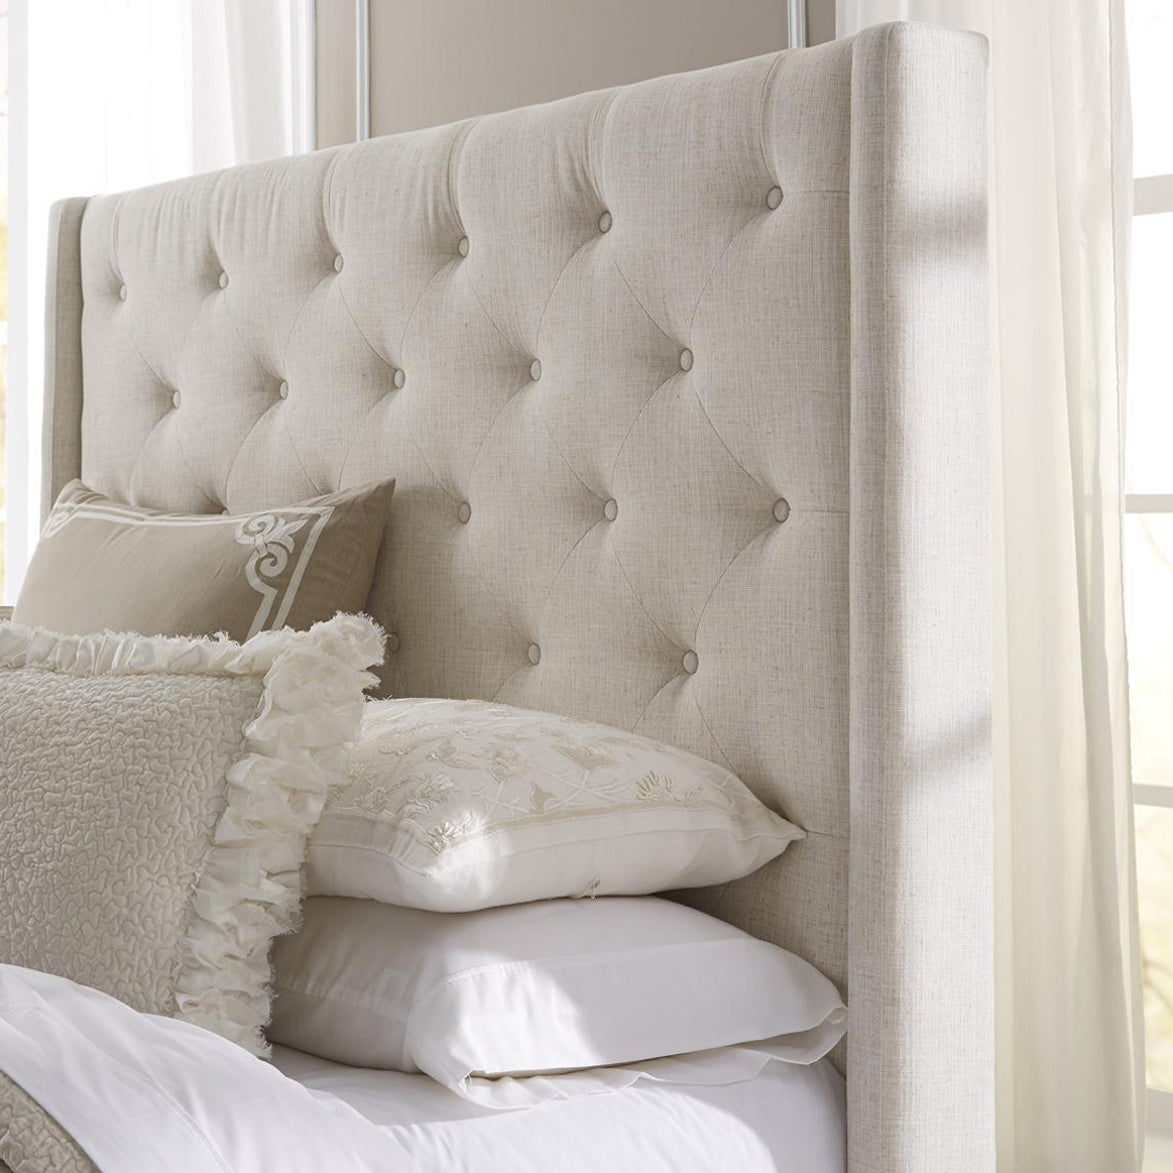 Shop Black Friday Deals On Wingback Button Tufted Cream Queen Size Upholstered Headboard Overstock 9365617